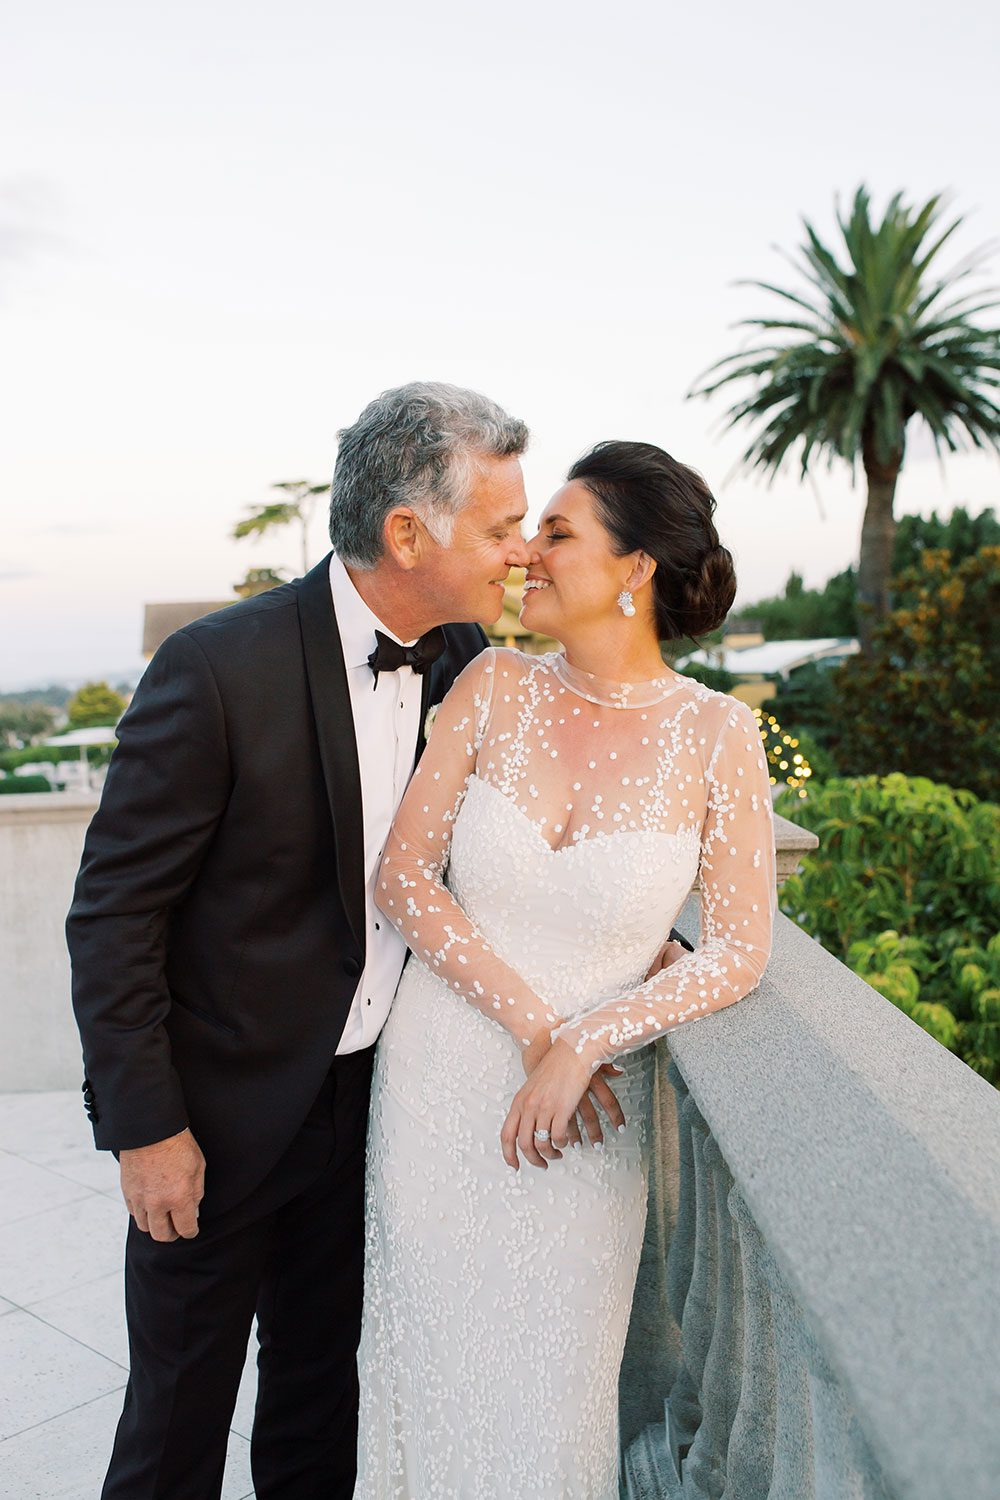 Bride wearing bespoke gown by Auckland wedding dress designer Vinka Design, with a high neckline and delicate spotted embroidery - profile with groom